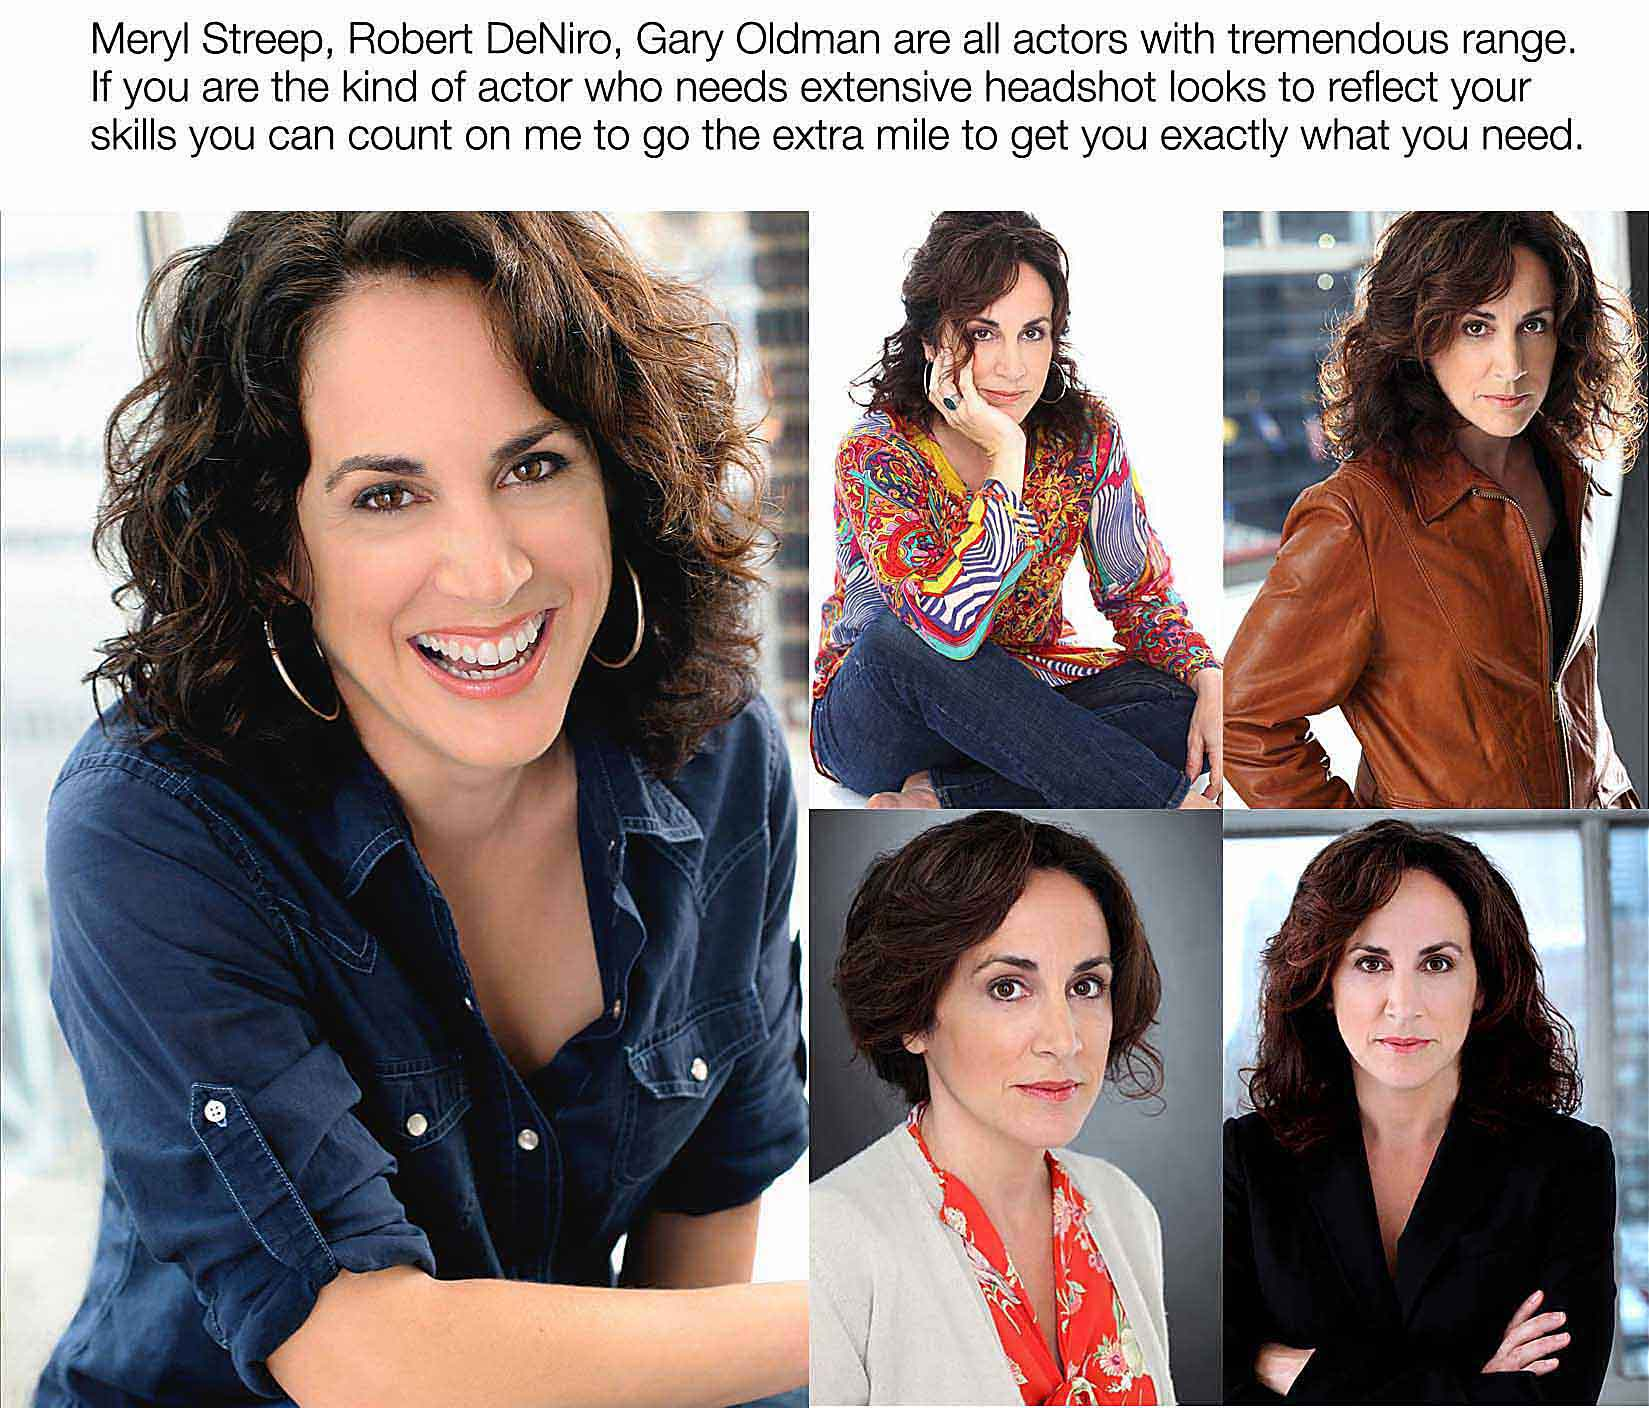 New York Actors Headshot Photographer Douglas Gorenstein Photography – NYC Corporate & Executive Portraits, On Set Photography